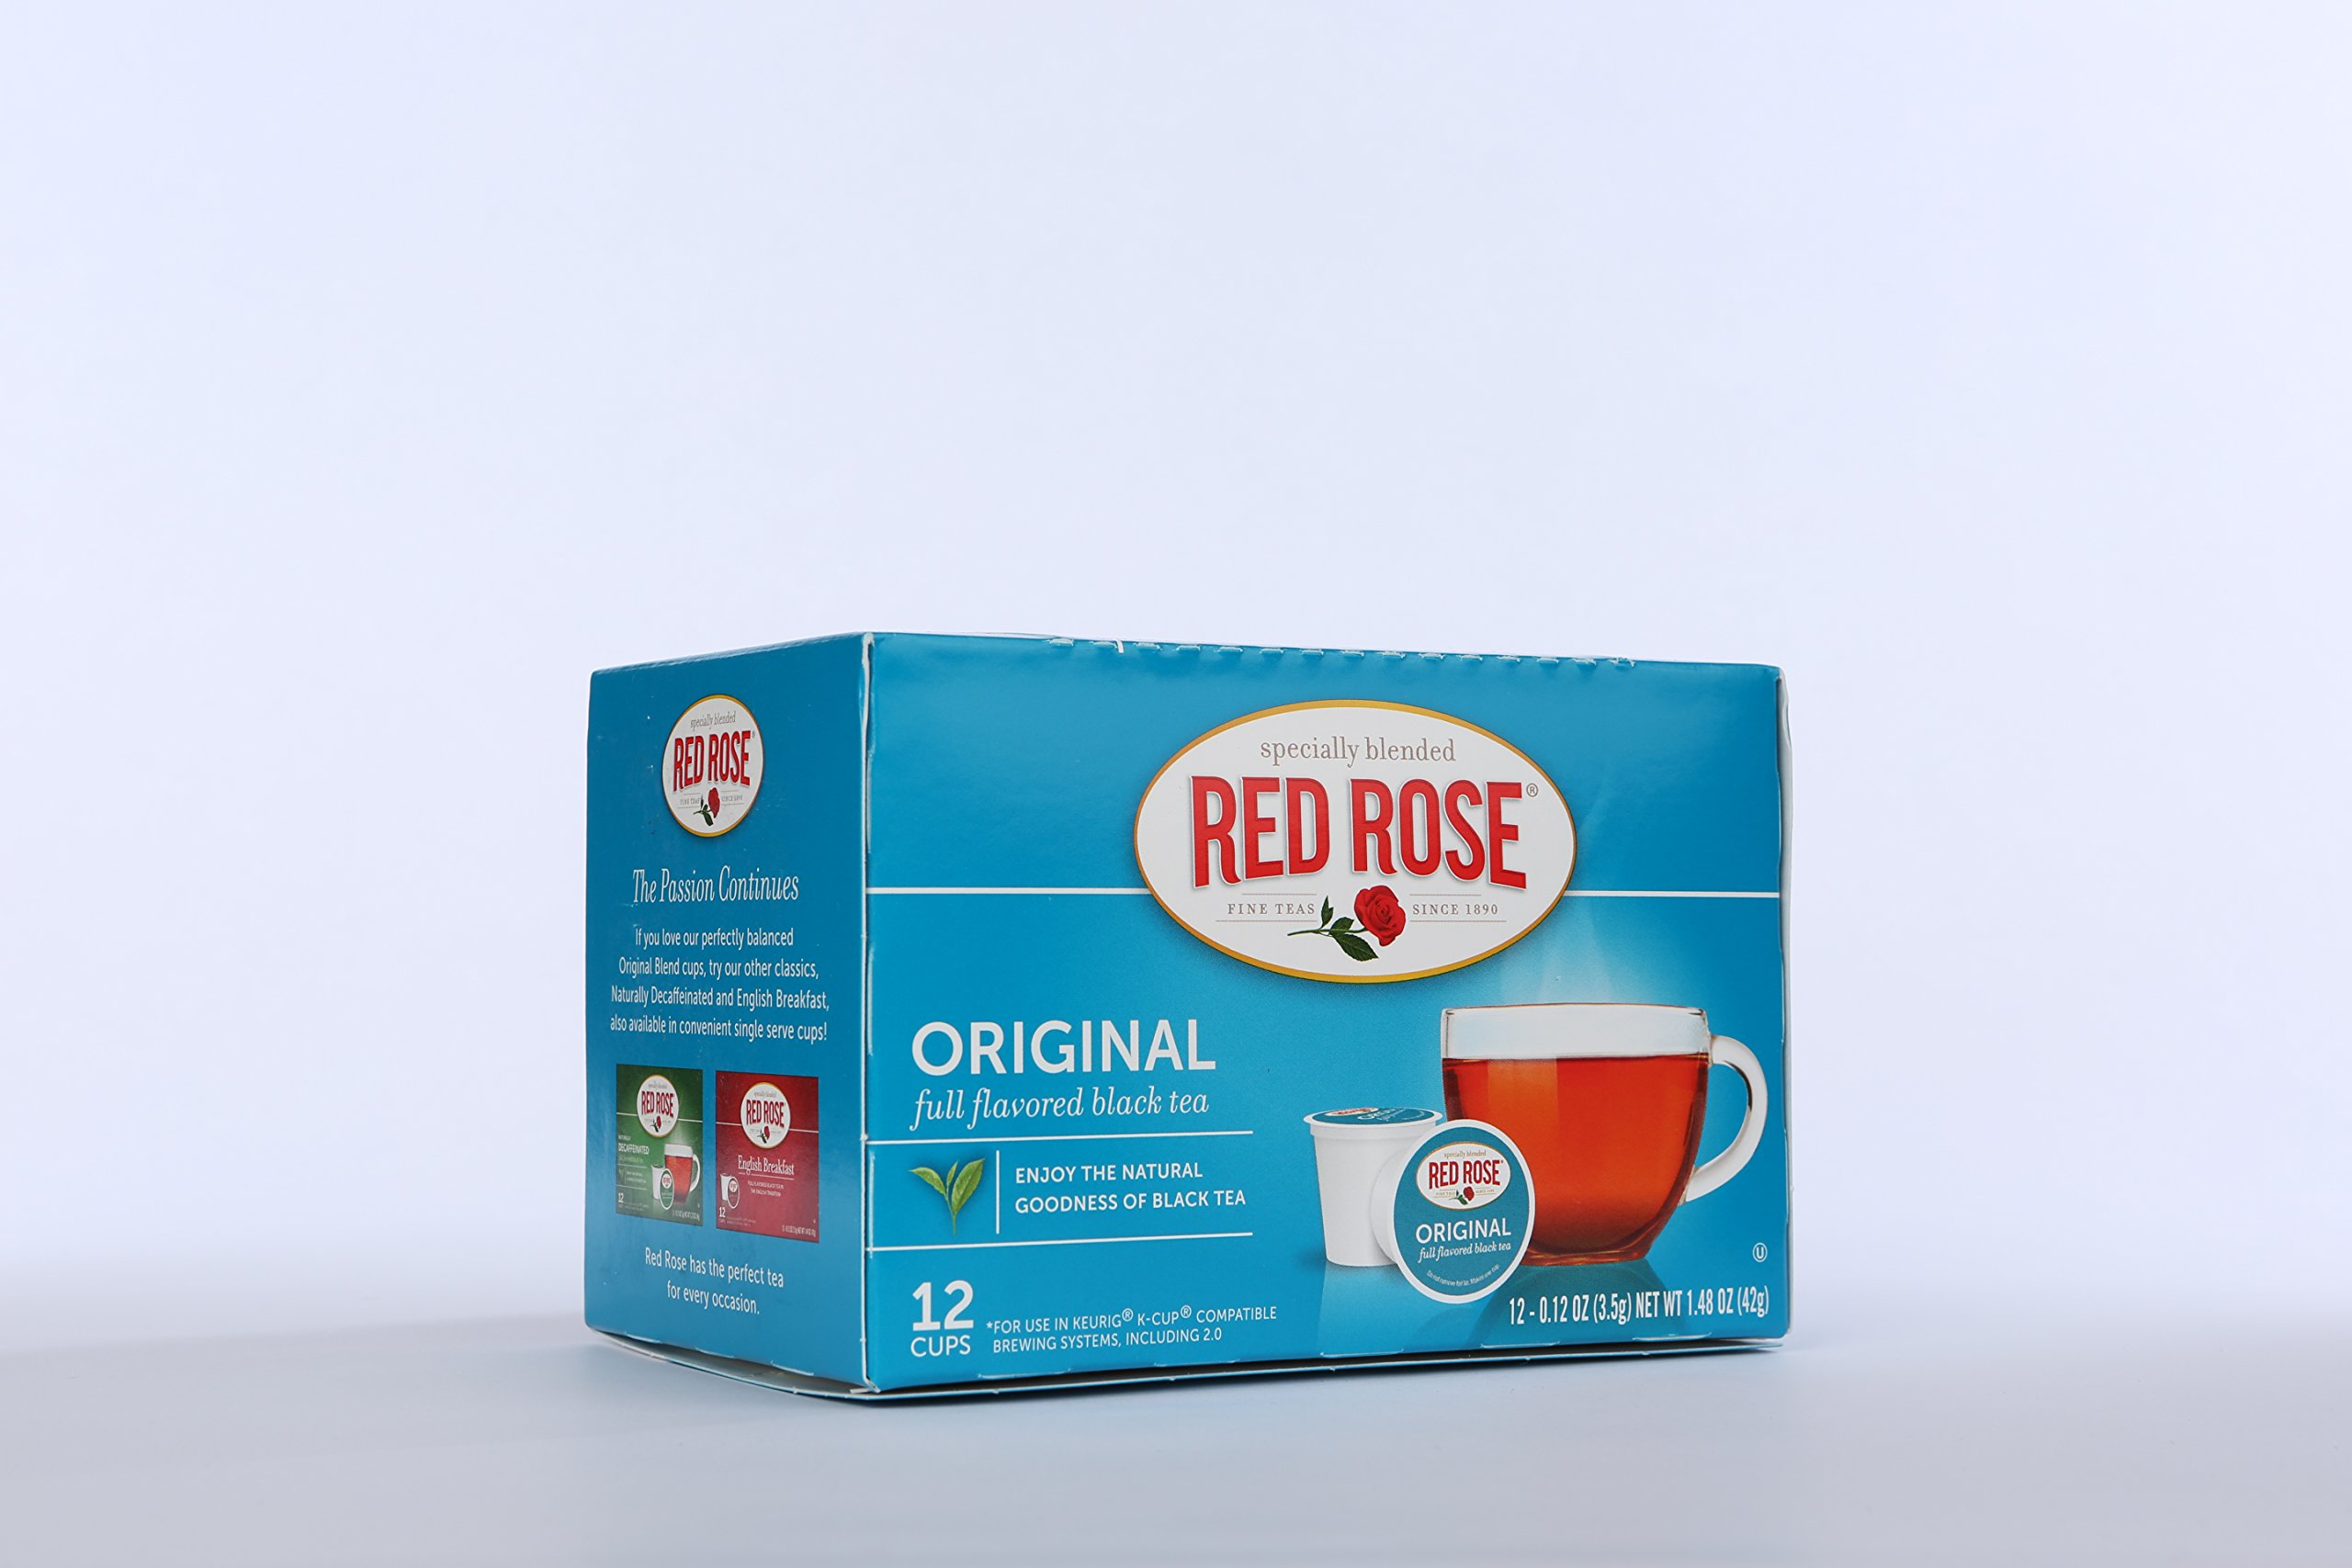 Red Rose Teas Black Teas, 72 Single Serve Cups K-Cup Pods for Keurig Coffee Maker, Original Black by Red Rose